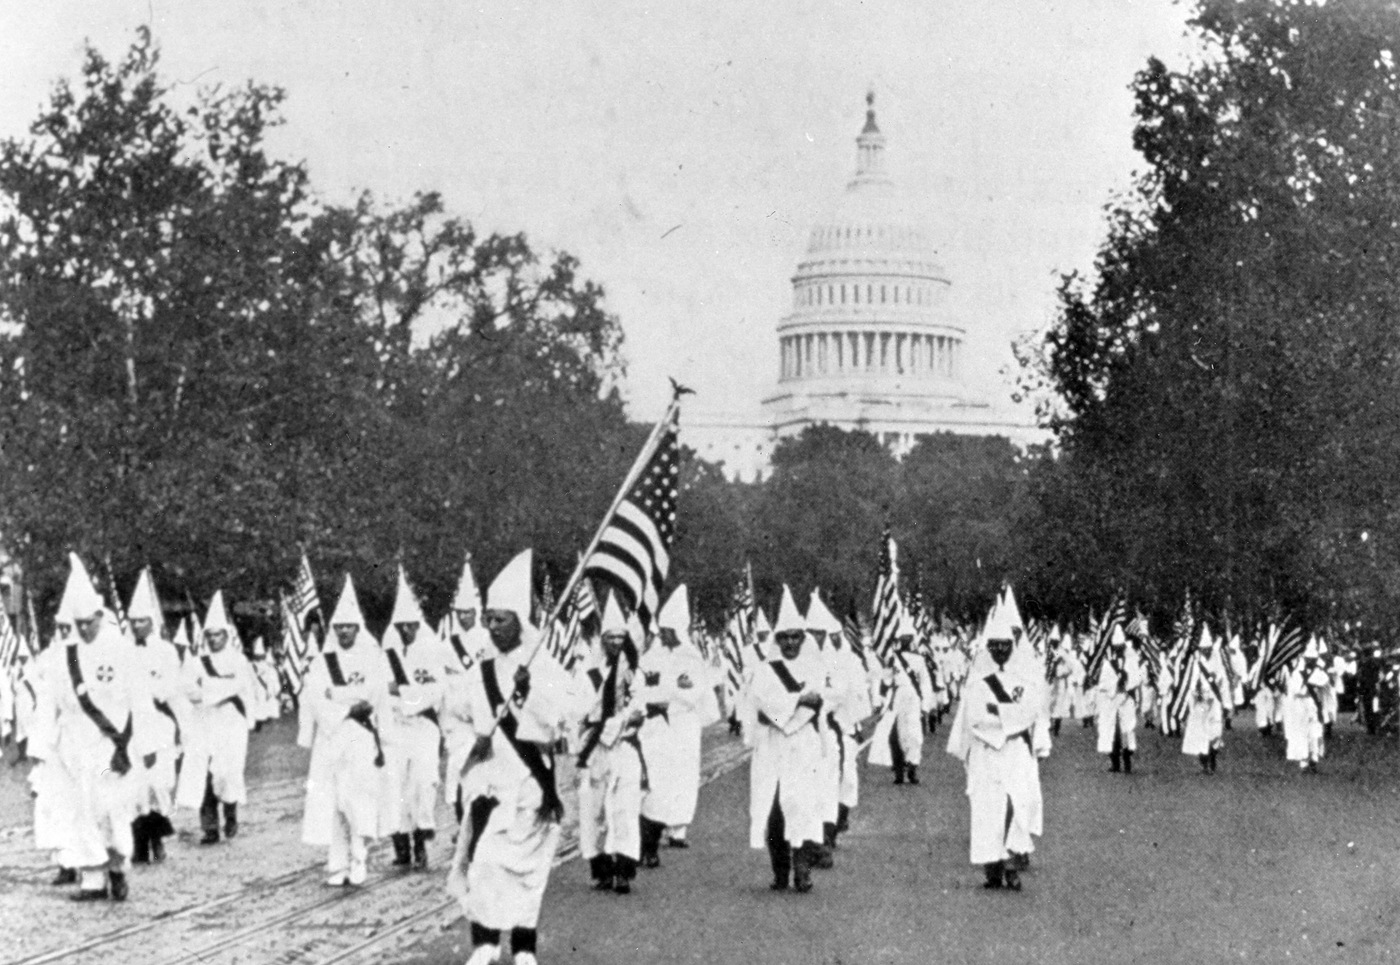 Robed members of the KKK marching down Pennsylvania Avenue in Washington, D.C., with American flags and the U.S. Capitol in the background.